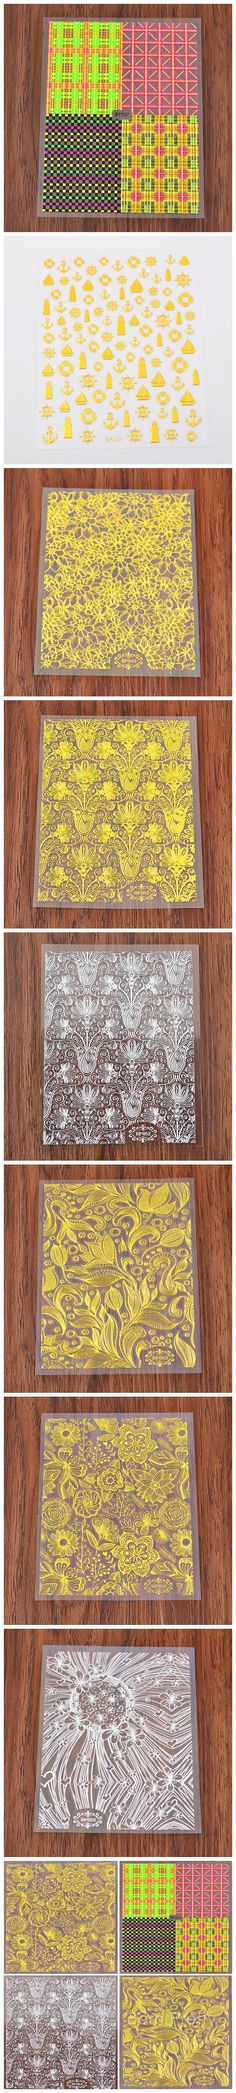 $2.49 1 Sheet Embossed Texture Stickers Gold Silver Flower Grid Pattern 3D Nail Art Stickers Decals - BornPrettyStore.com